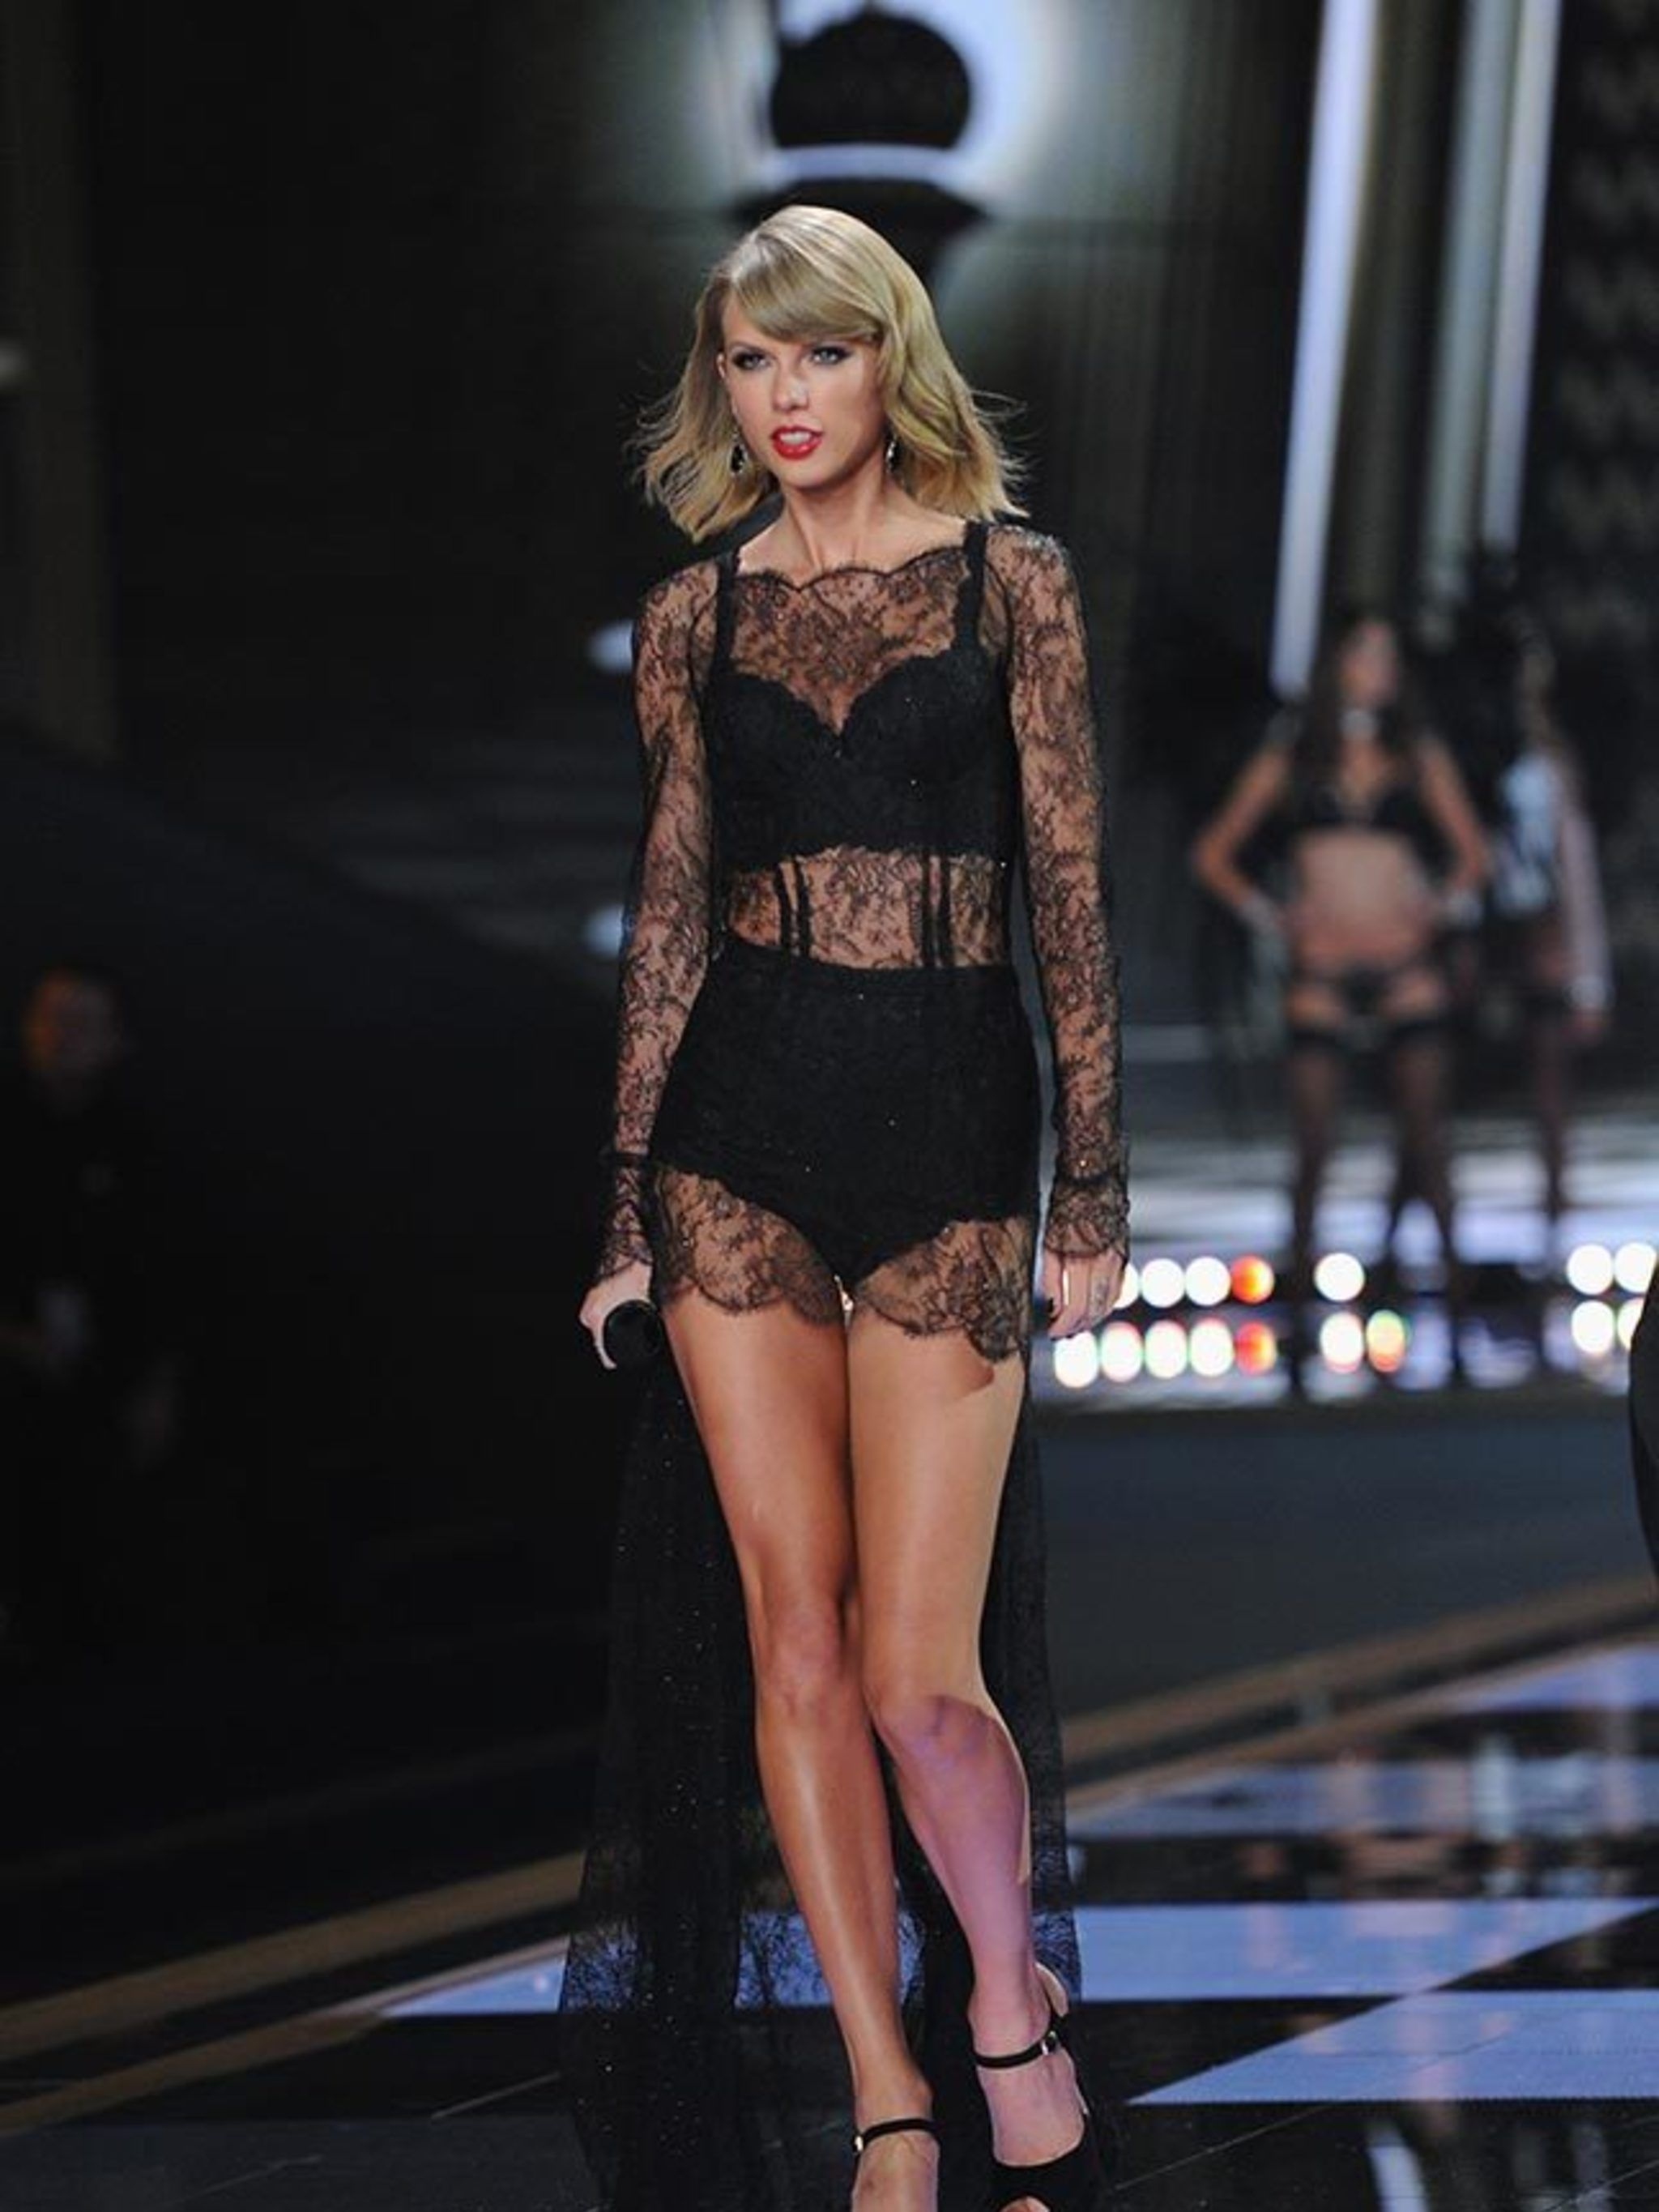 f783b5cbe5b9 Taylor Swift s Style File - Every One Of Taylor Swift s Country Glam Outfits